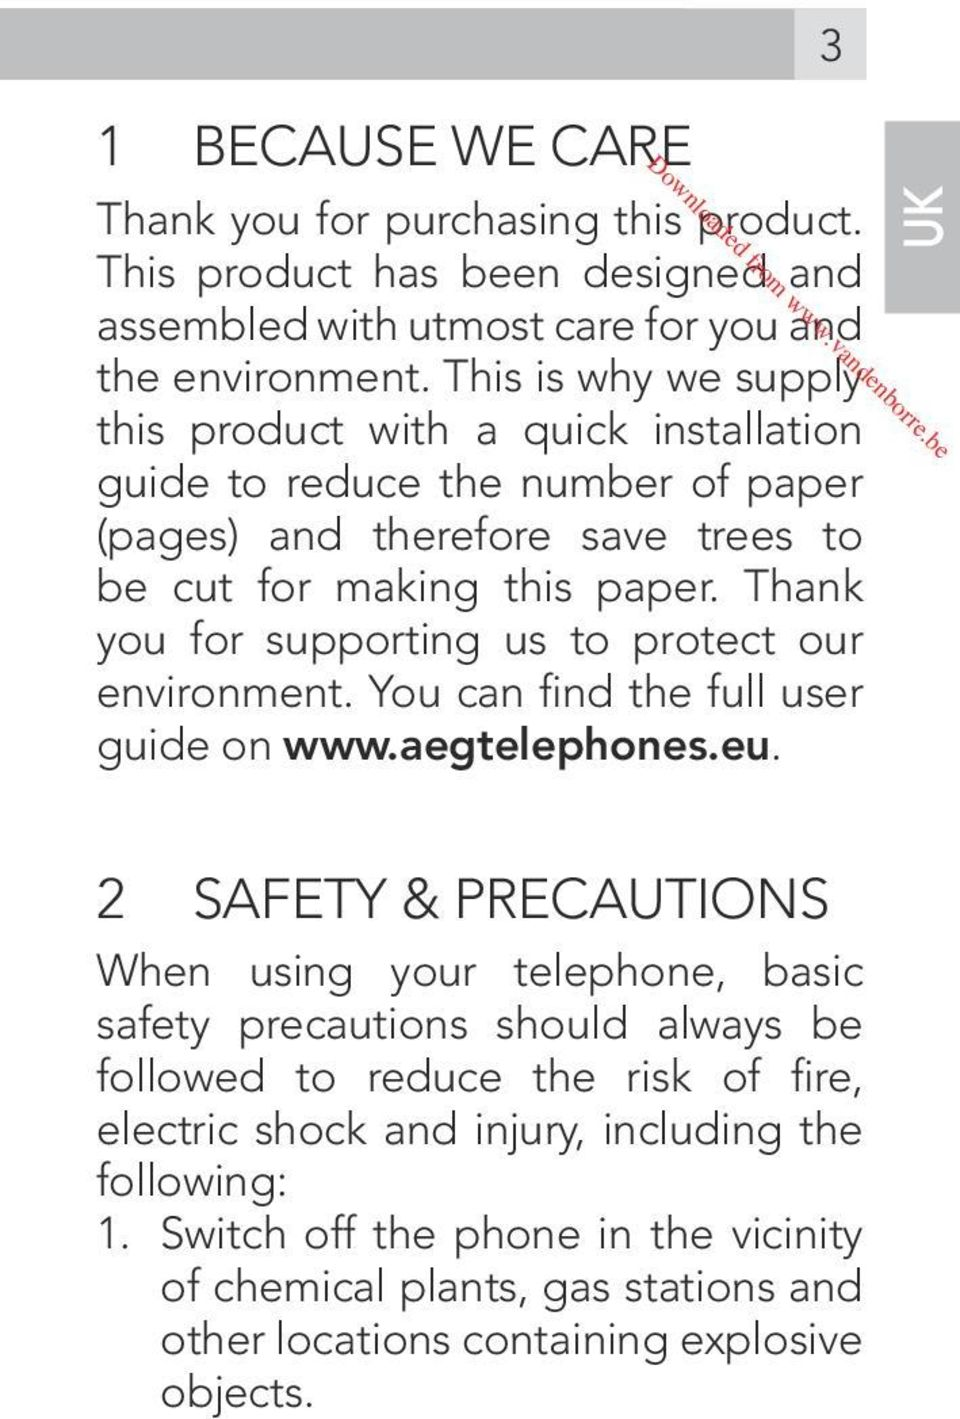 Thank you for supporting us to protect our environment. You can find the full user guide on www.aegtelephones.eu.